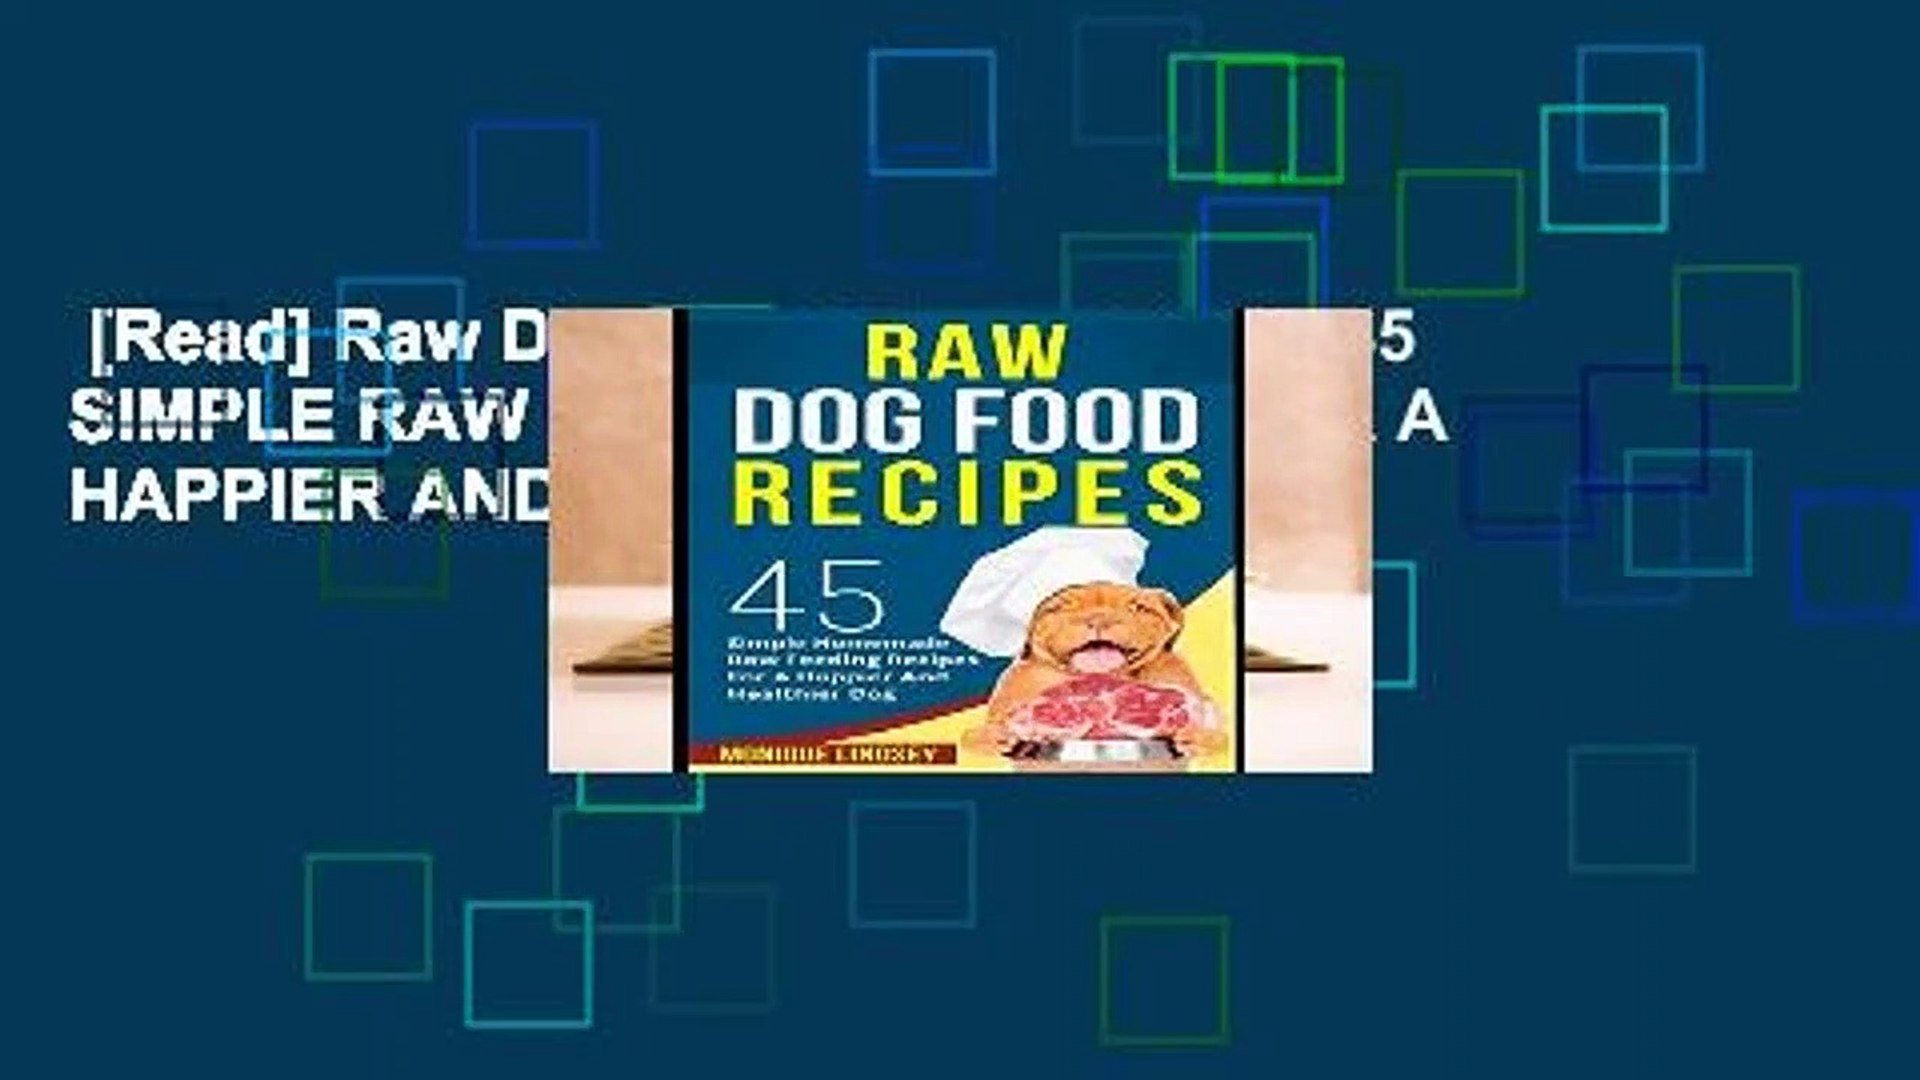 Read Raw Dog Food Recipe Book 45 Simple Raw Feeding Recipes For A Happier And Healthier Dog